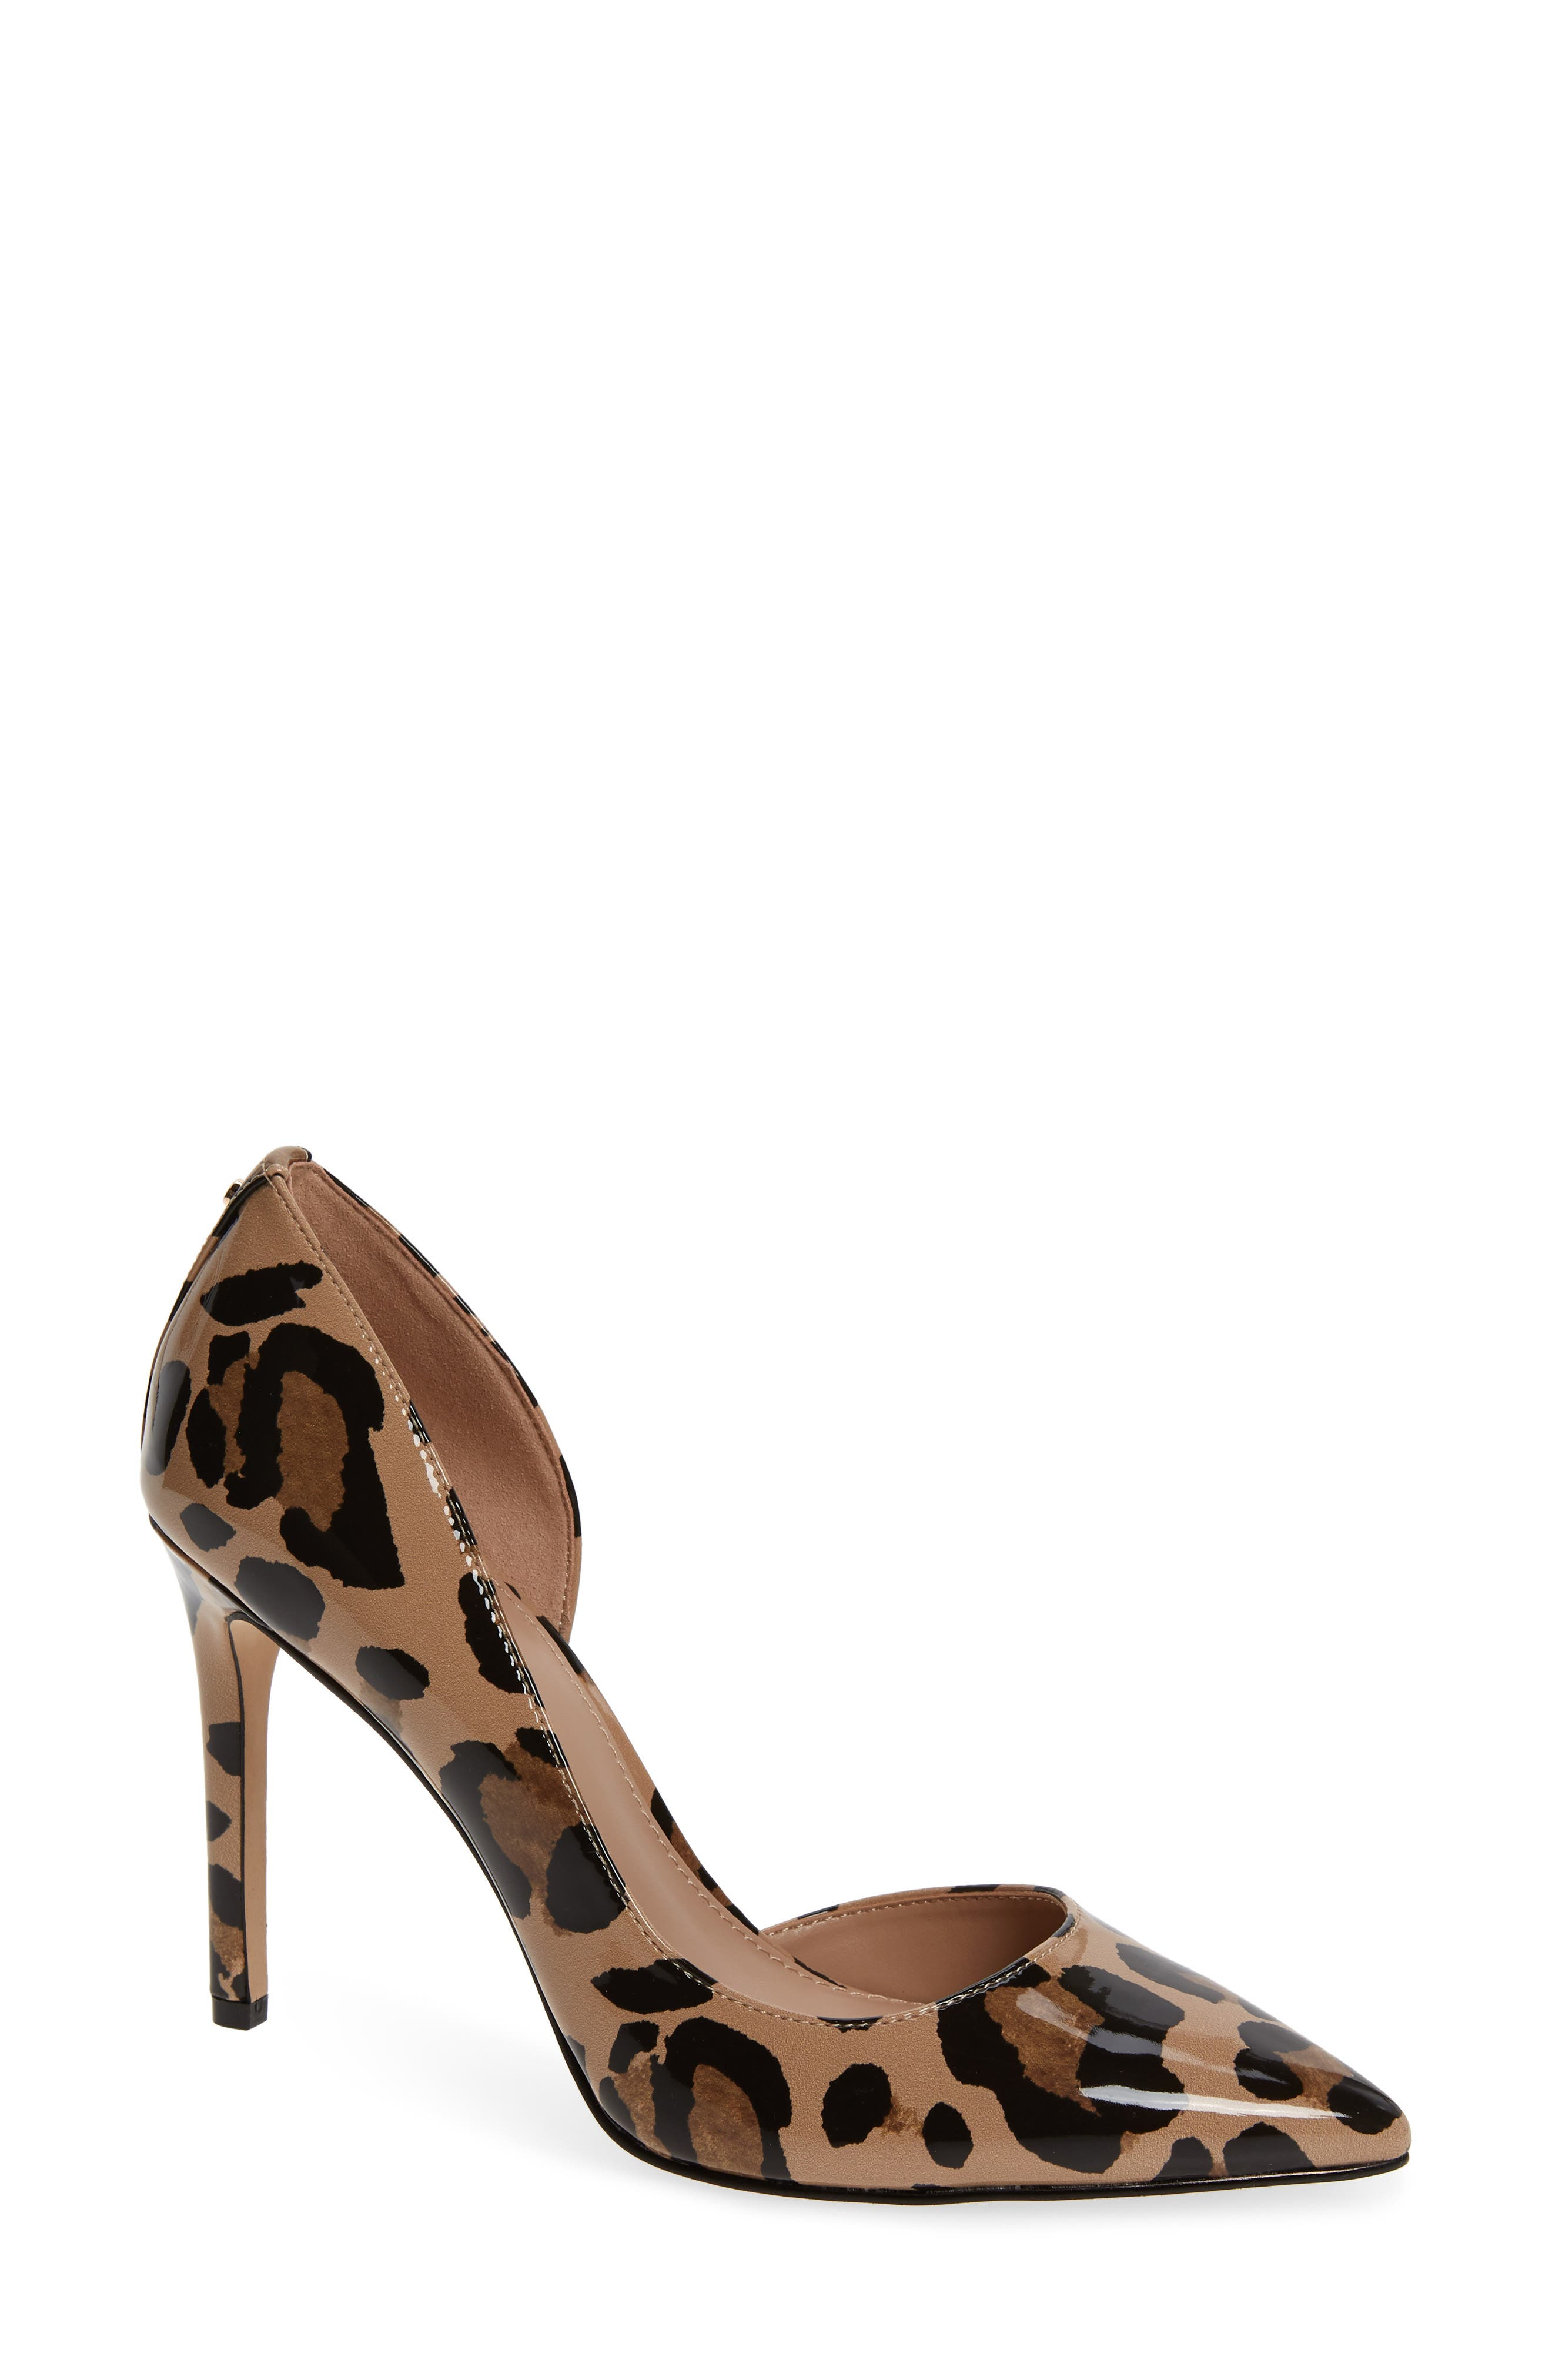 BCBG Lenny Half D'Orsay Pump in Brown Multi Patent Leather